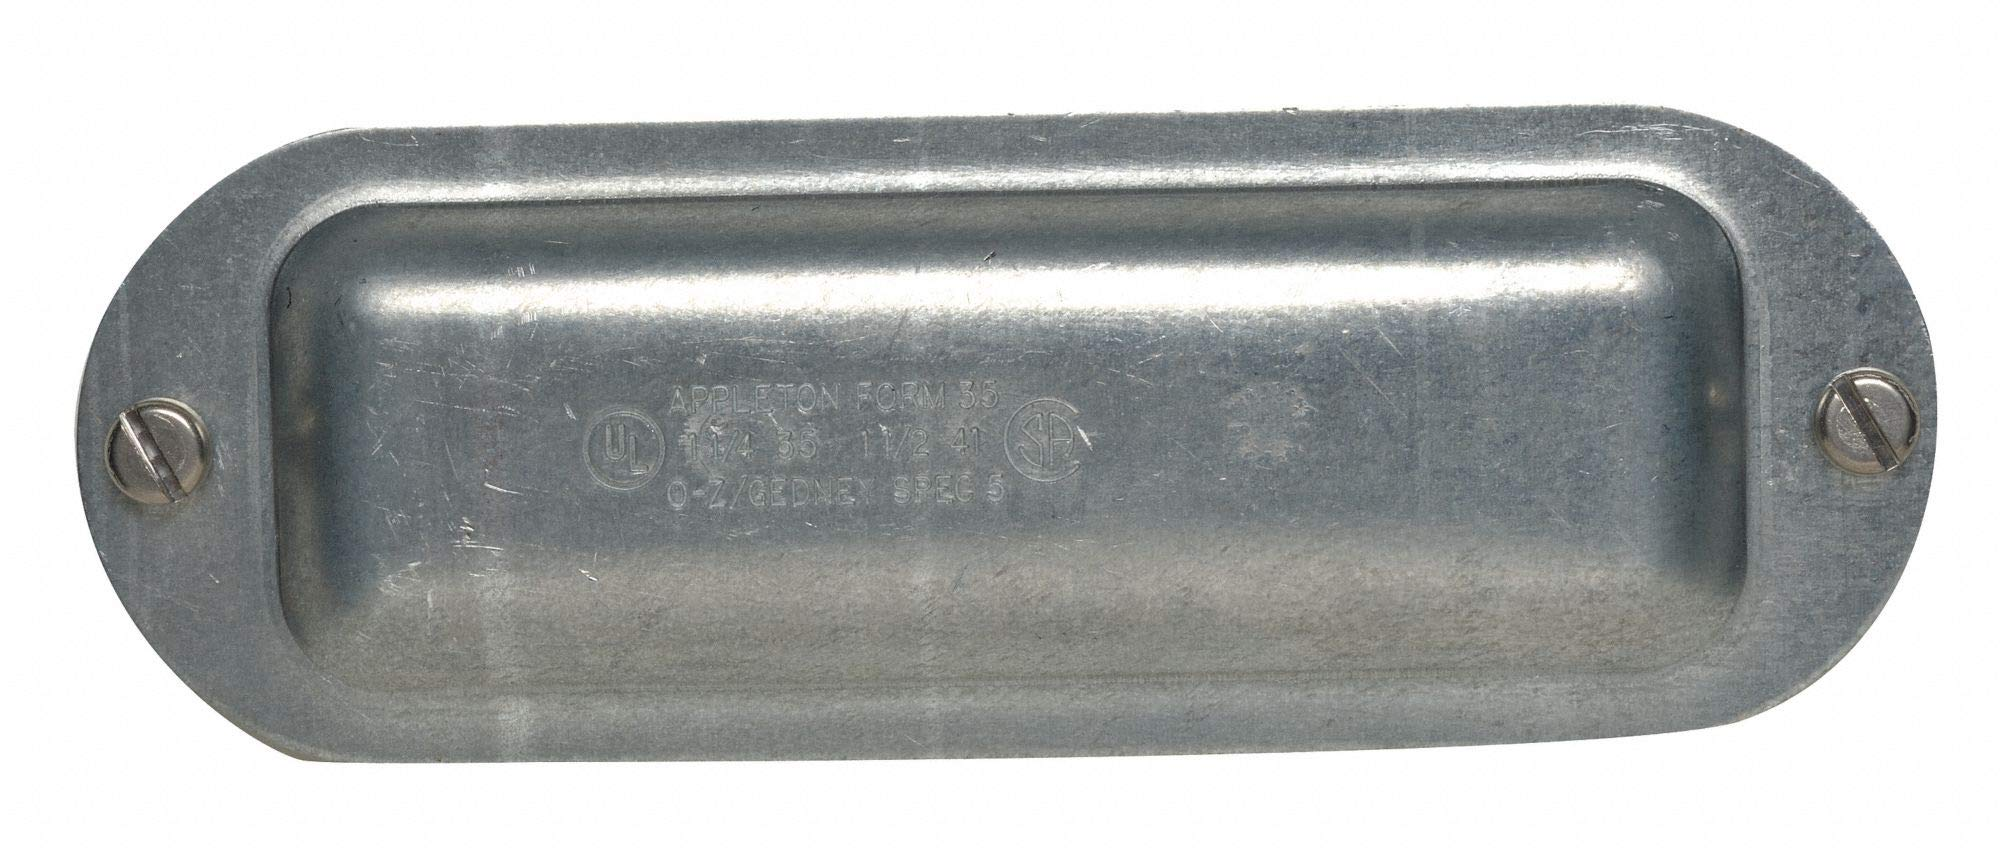 Conduit Body Cover, 1-1/4'' Hub Size, For Use With Appleton Form 35 Unilet Conduit Outlet Bodies